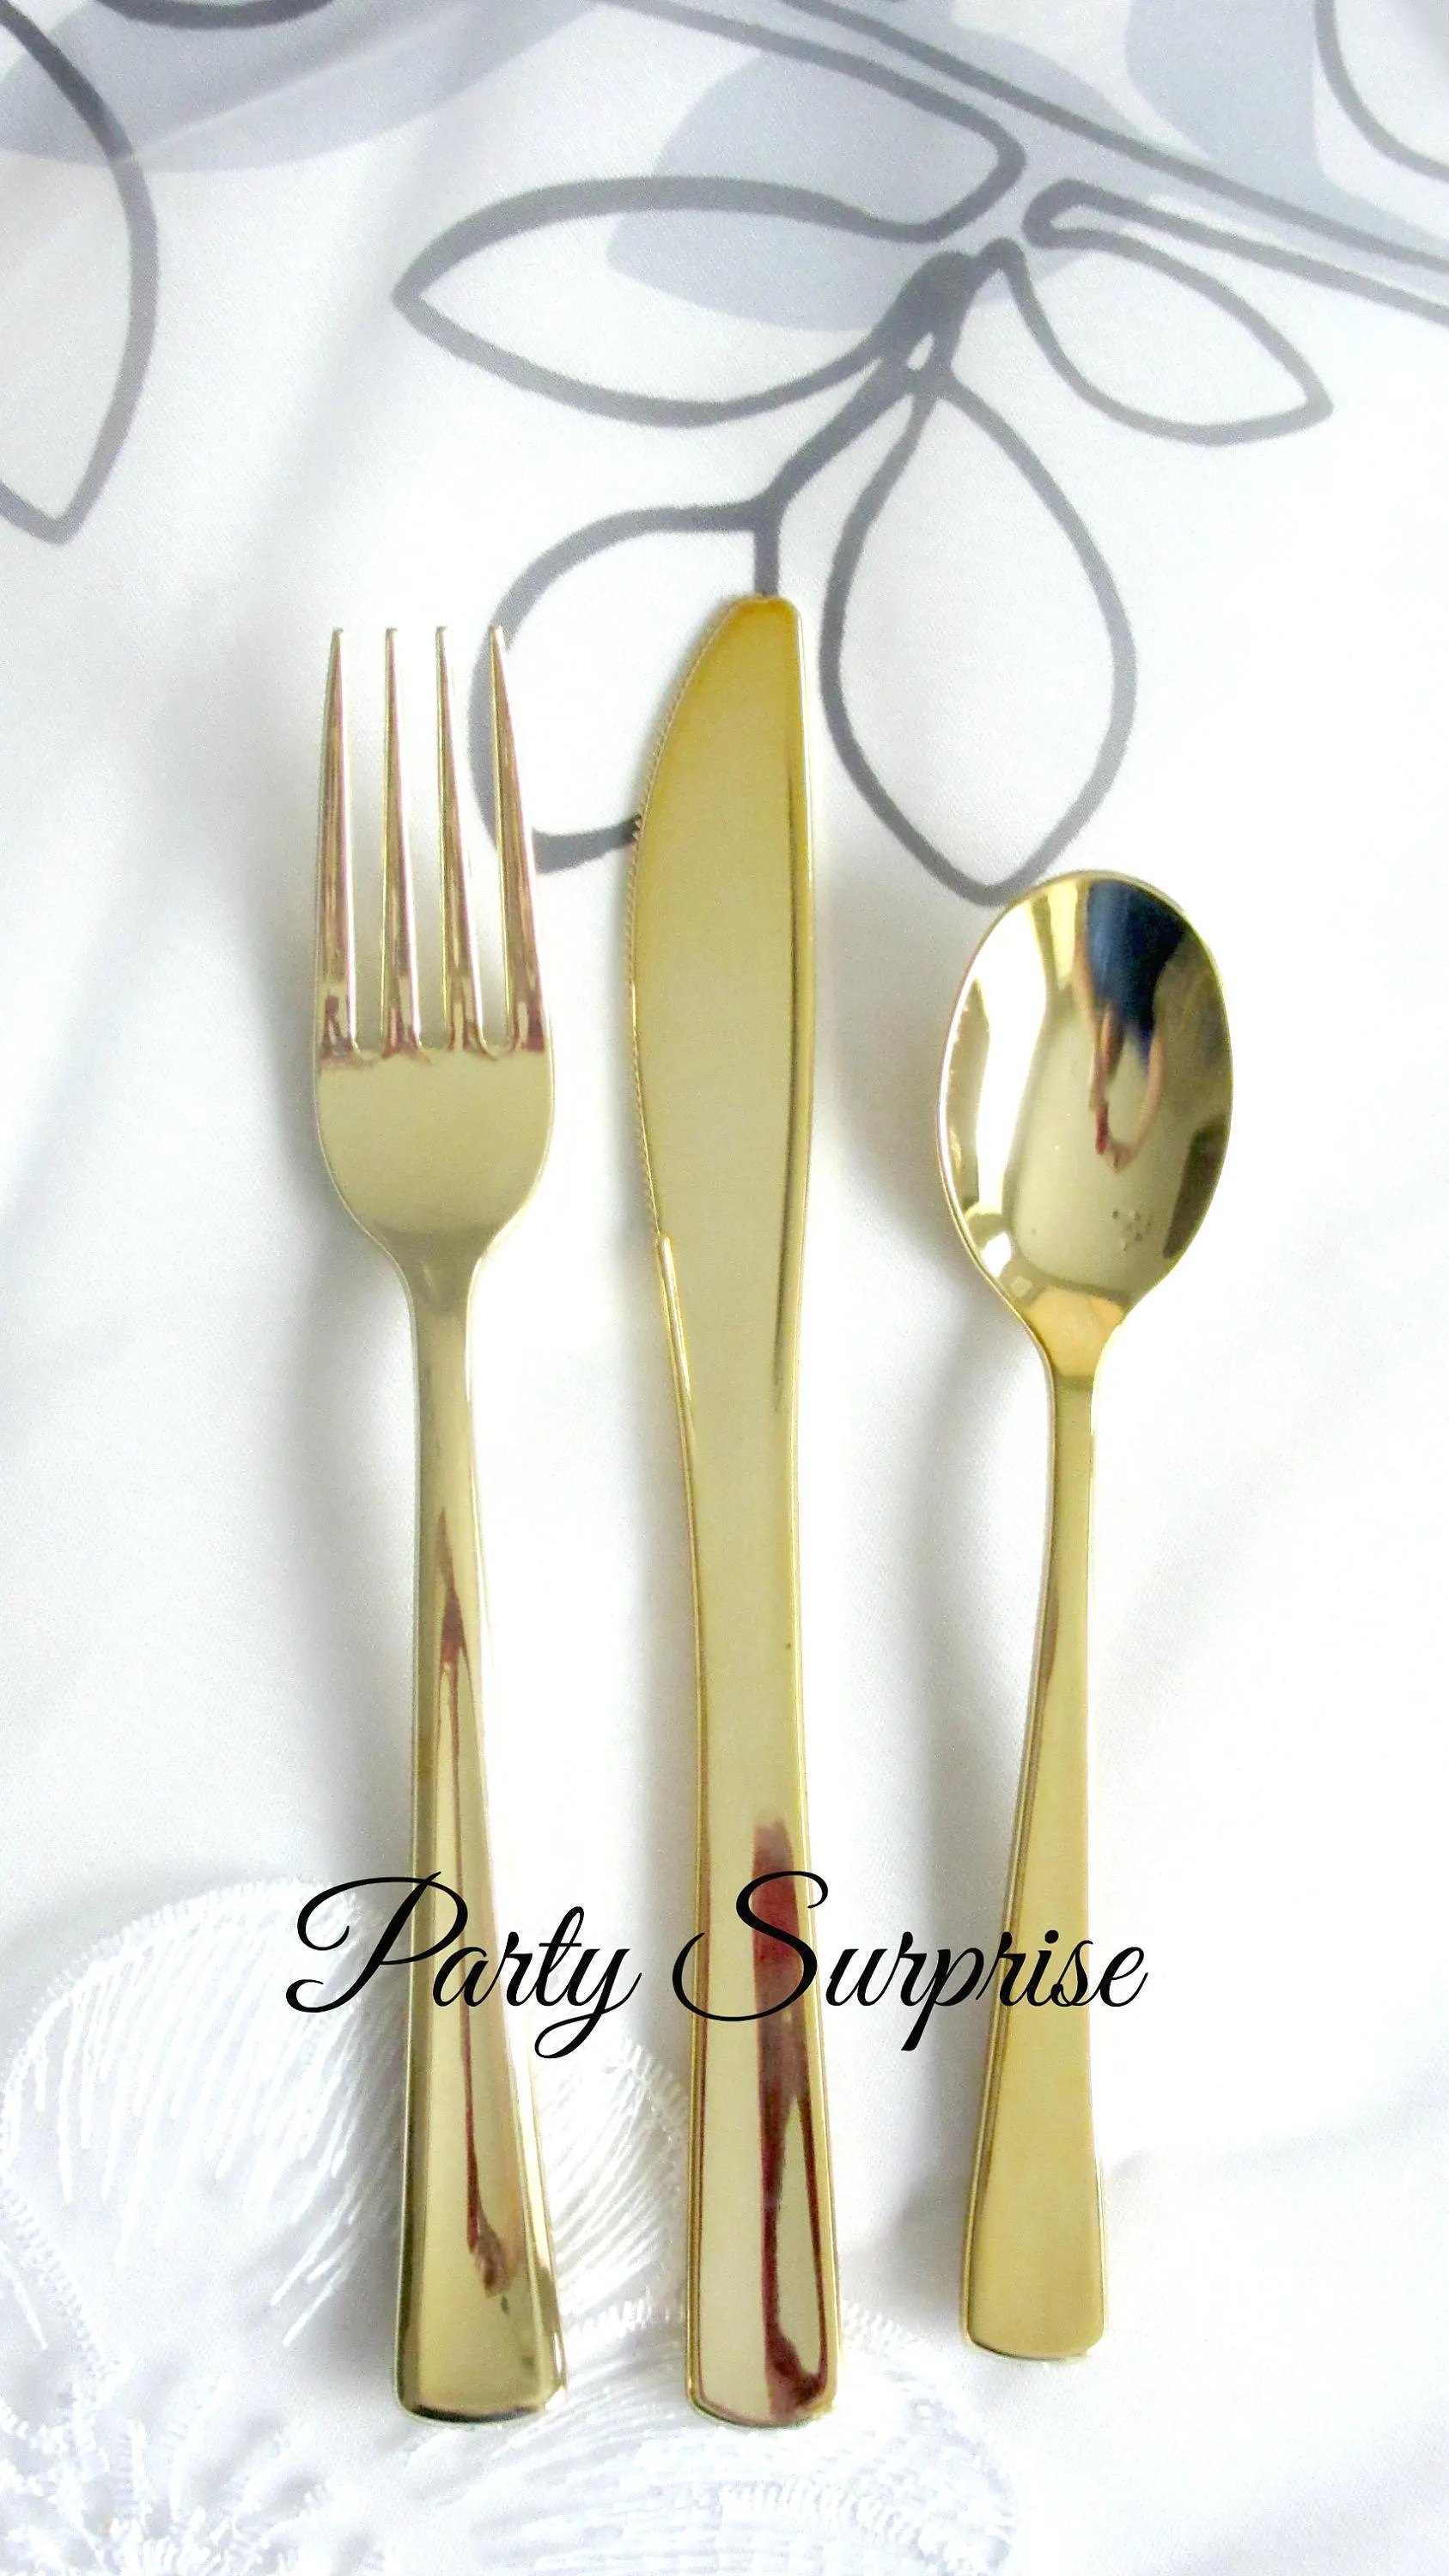 Gold Cutlery Sets Gold Cutlery Disposable Can T Believe Its Not Real Genuine Knives Forks Spoons Metallic Gold Upscale Party Flatware Sets Strong Silverware